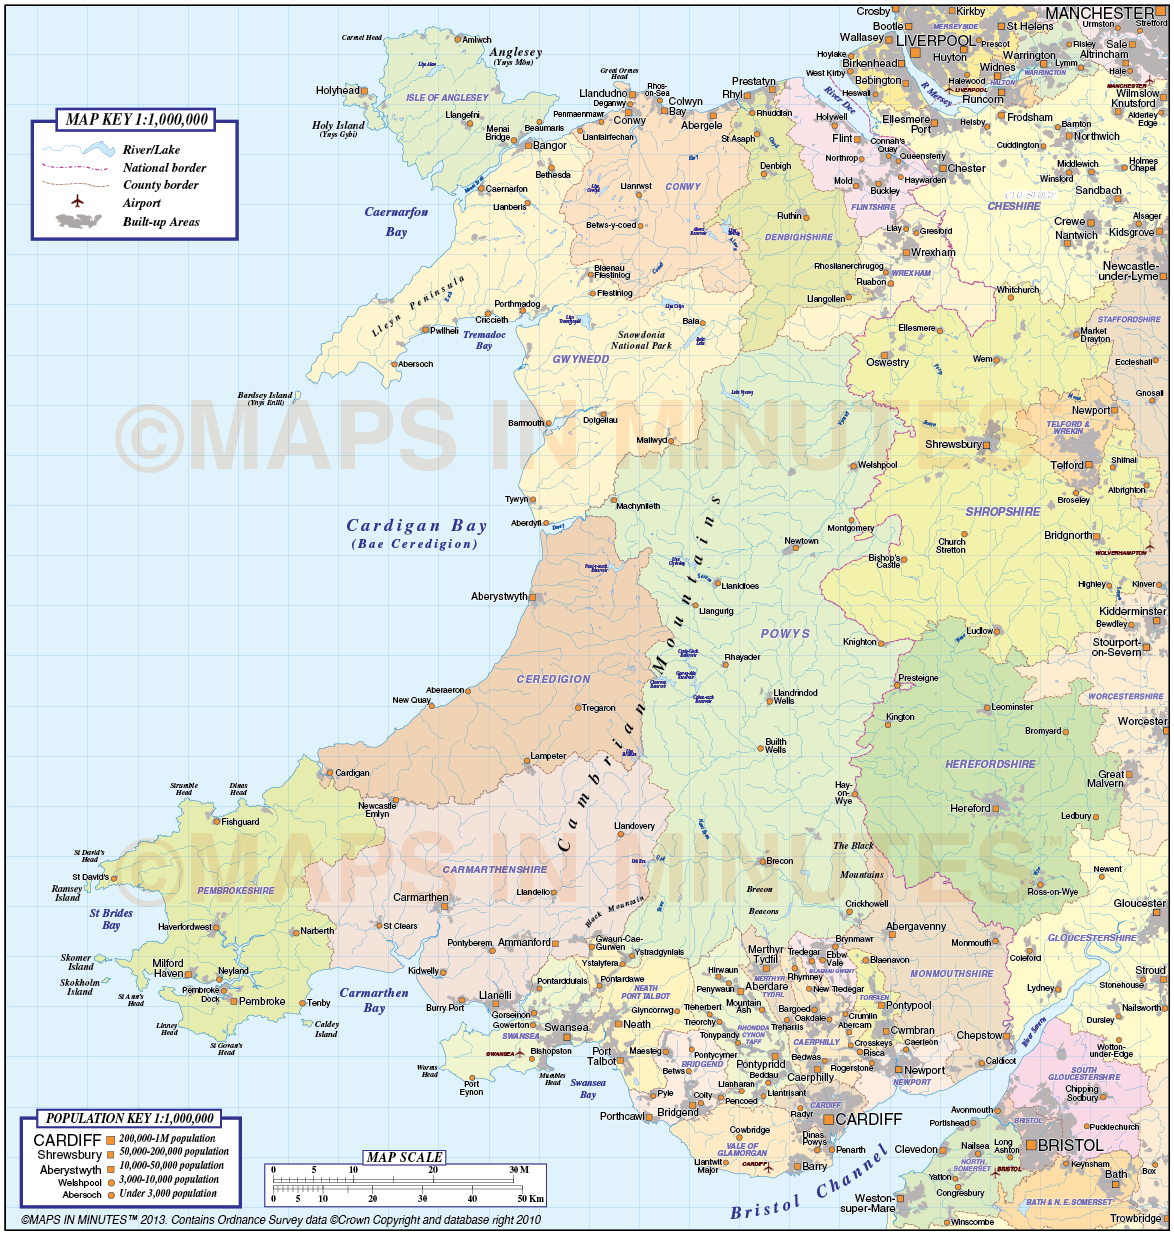 Wales Basic County map 1m scale Wales maps British Isles UK Maps